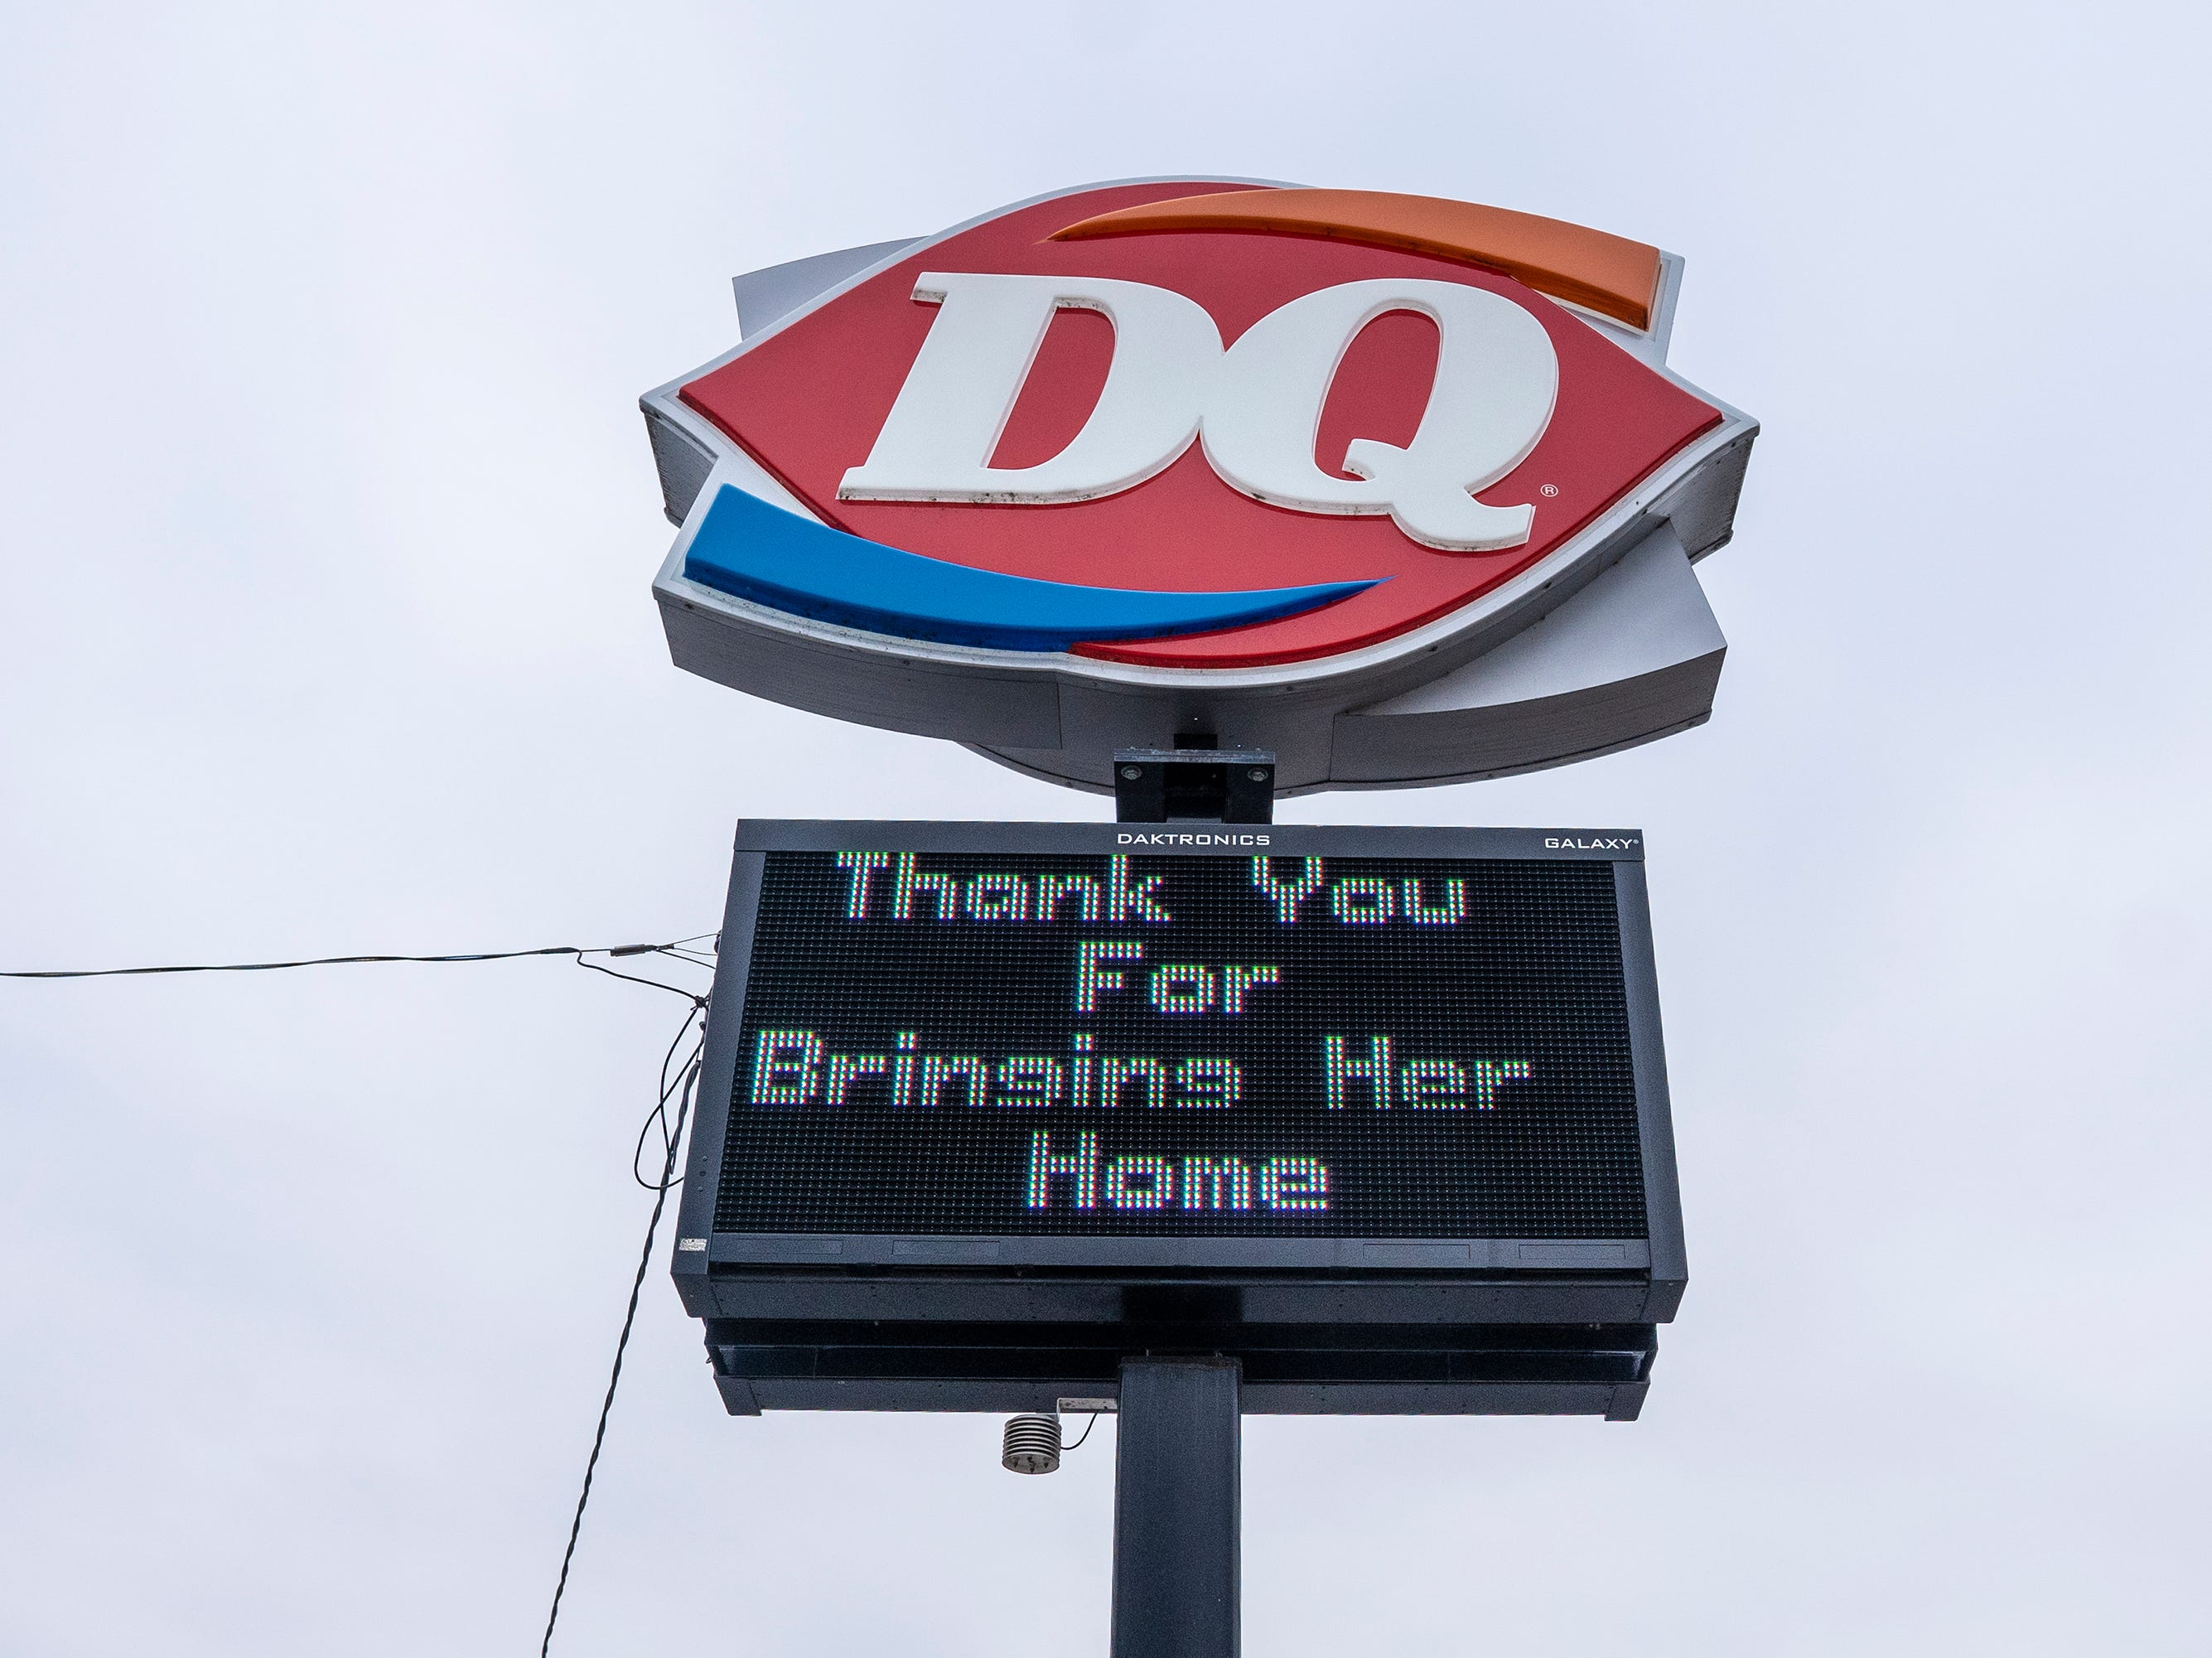 Dairy Queen's sign about the Jayme Closs case.